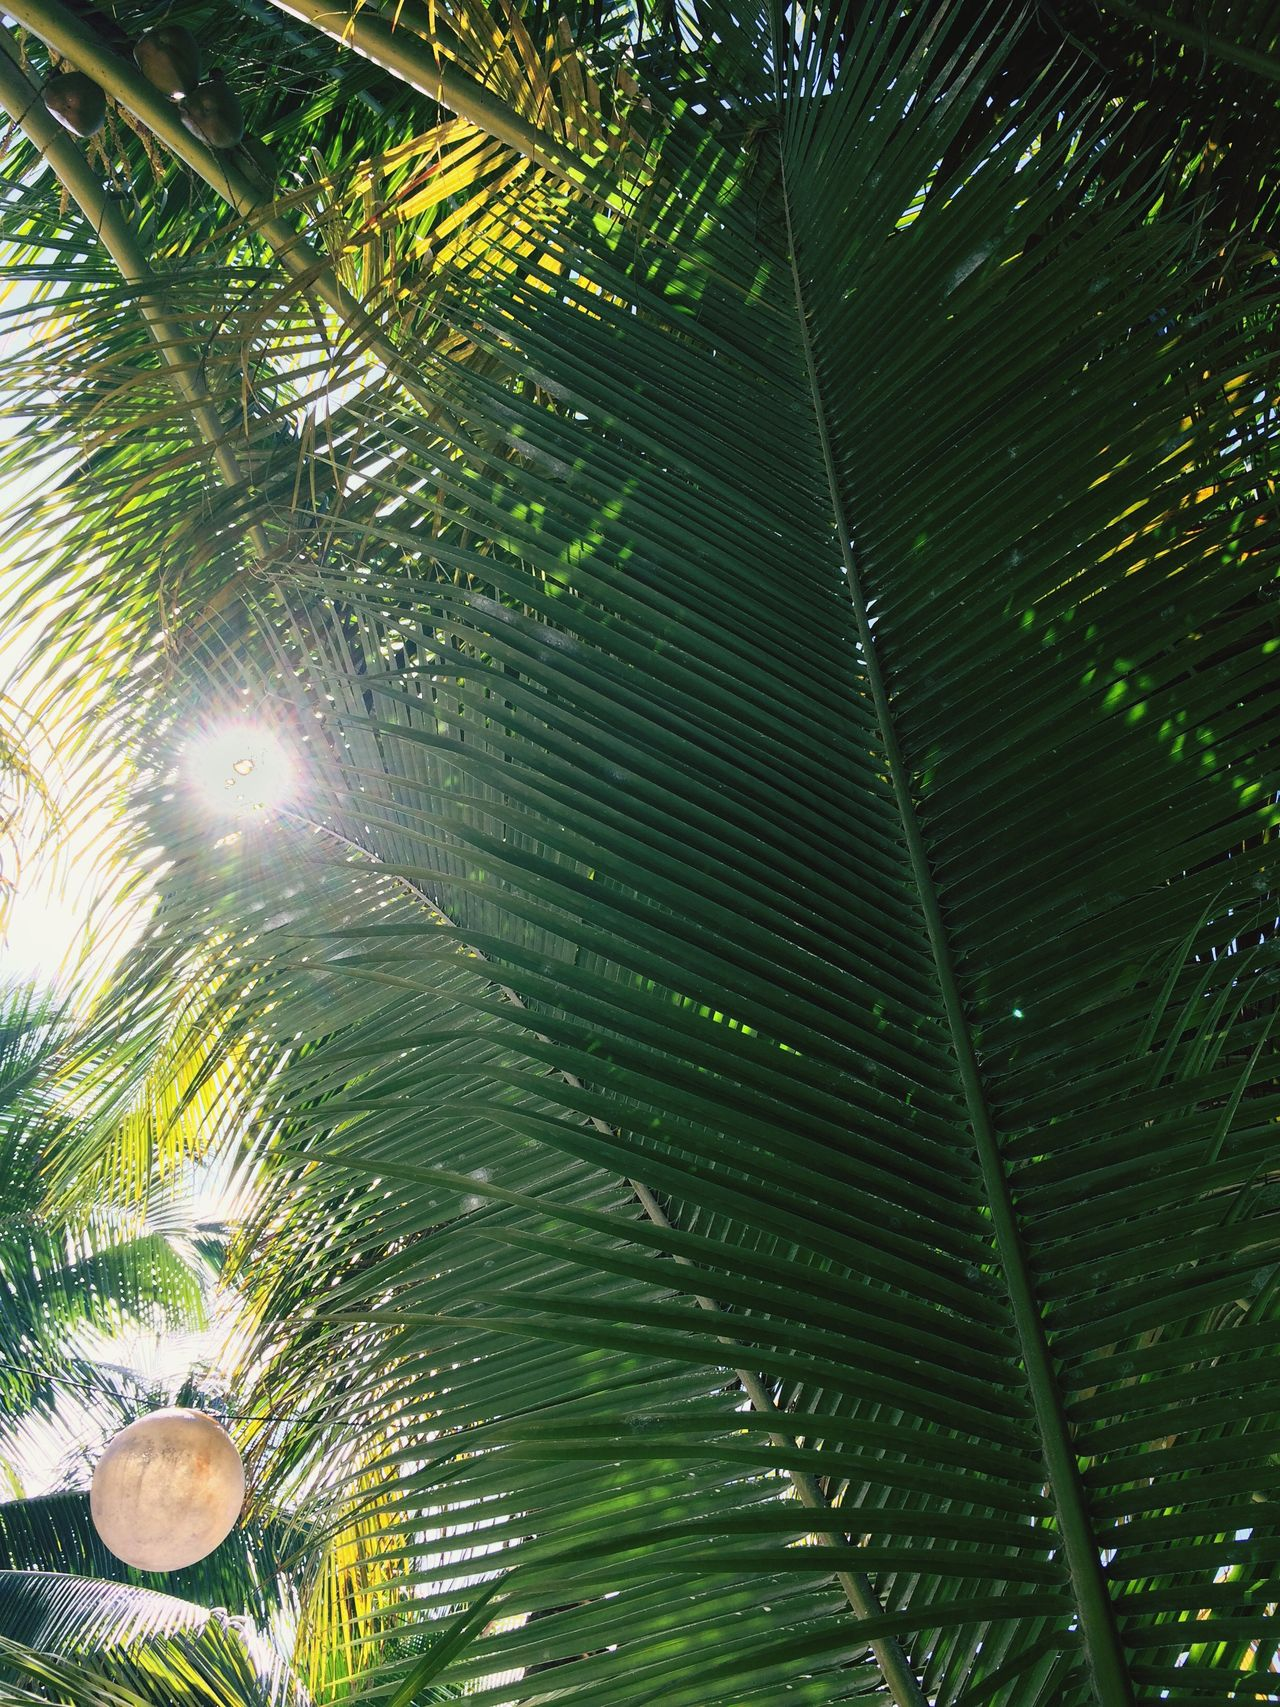 Peeking through Nature Green Color Palm Tree Tree Beauty In Nature Greenery Greenery Scenery Sunshine Sun Outdoors Tranquility Morning Light Morning Peeking Sun Peeking Through Peeking Outdoor Photography Bliss Blissfultraveler Tulum Tulum Beach Mexico Travel Travel Destinations Traveling Photography